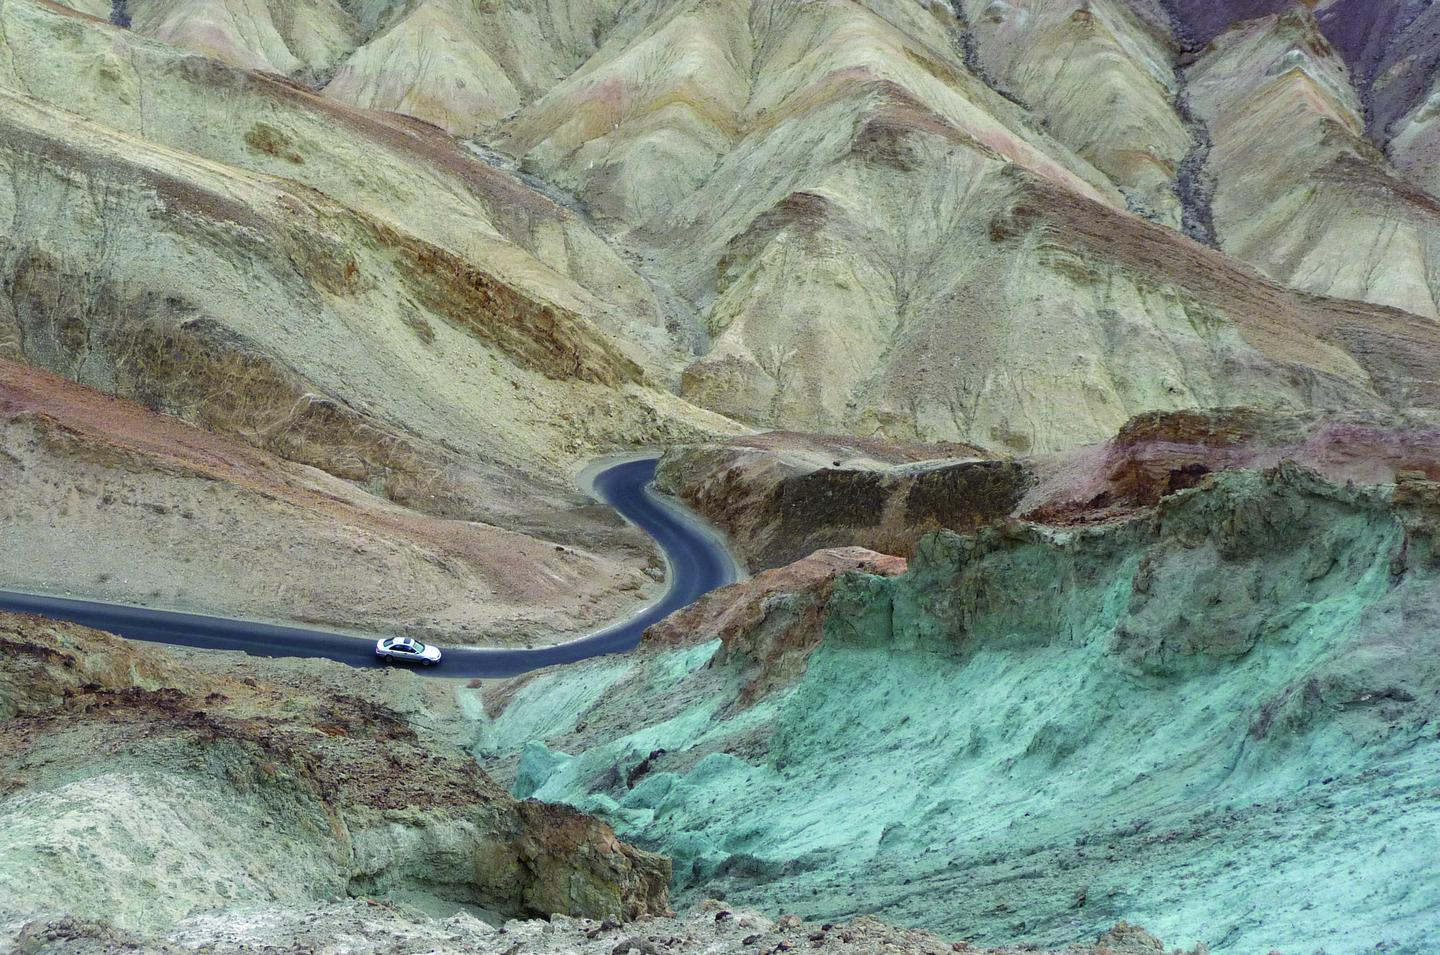 Artists Drive Scenic LoopColors from volcanic deposits rich in compounds such as iron oxides and chlorite, creating a rainbow effect, and a stunning drive through the most colorful geology in Death Valley!